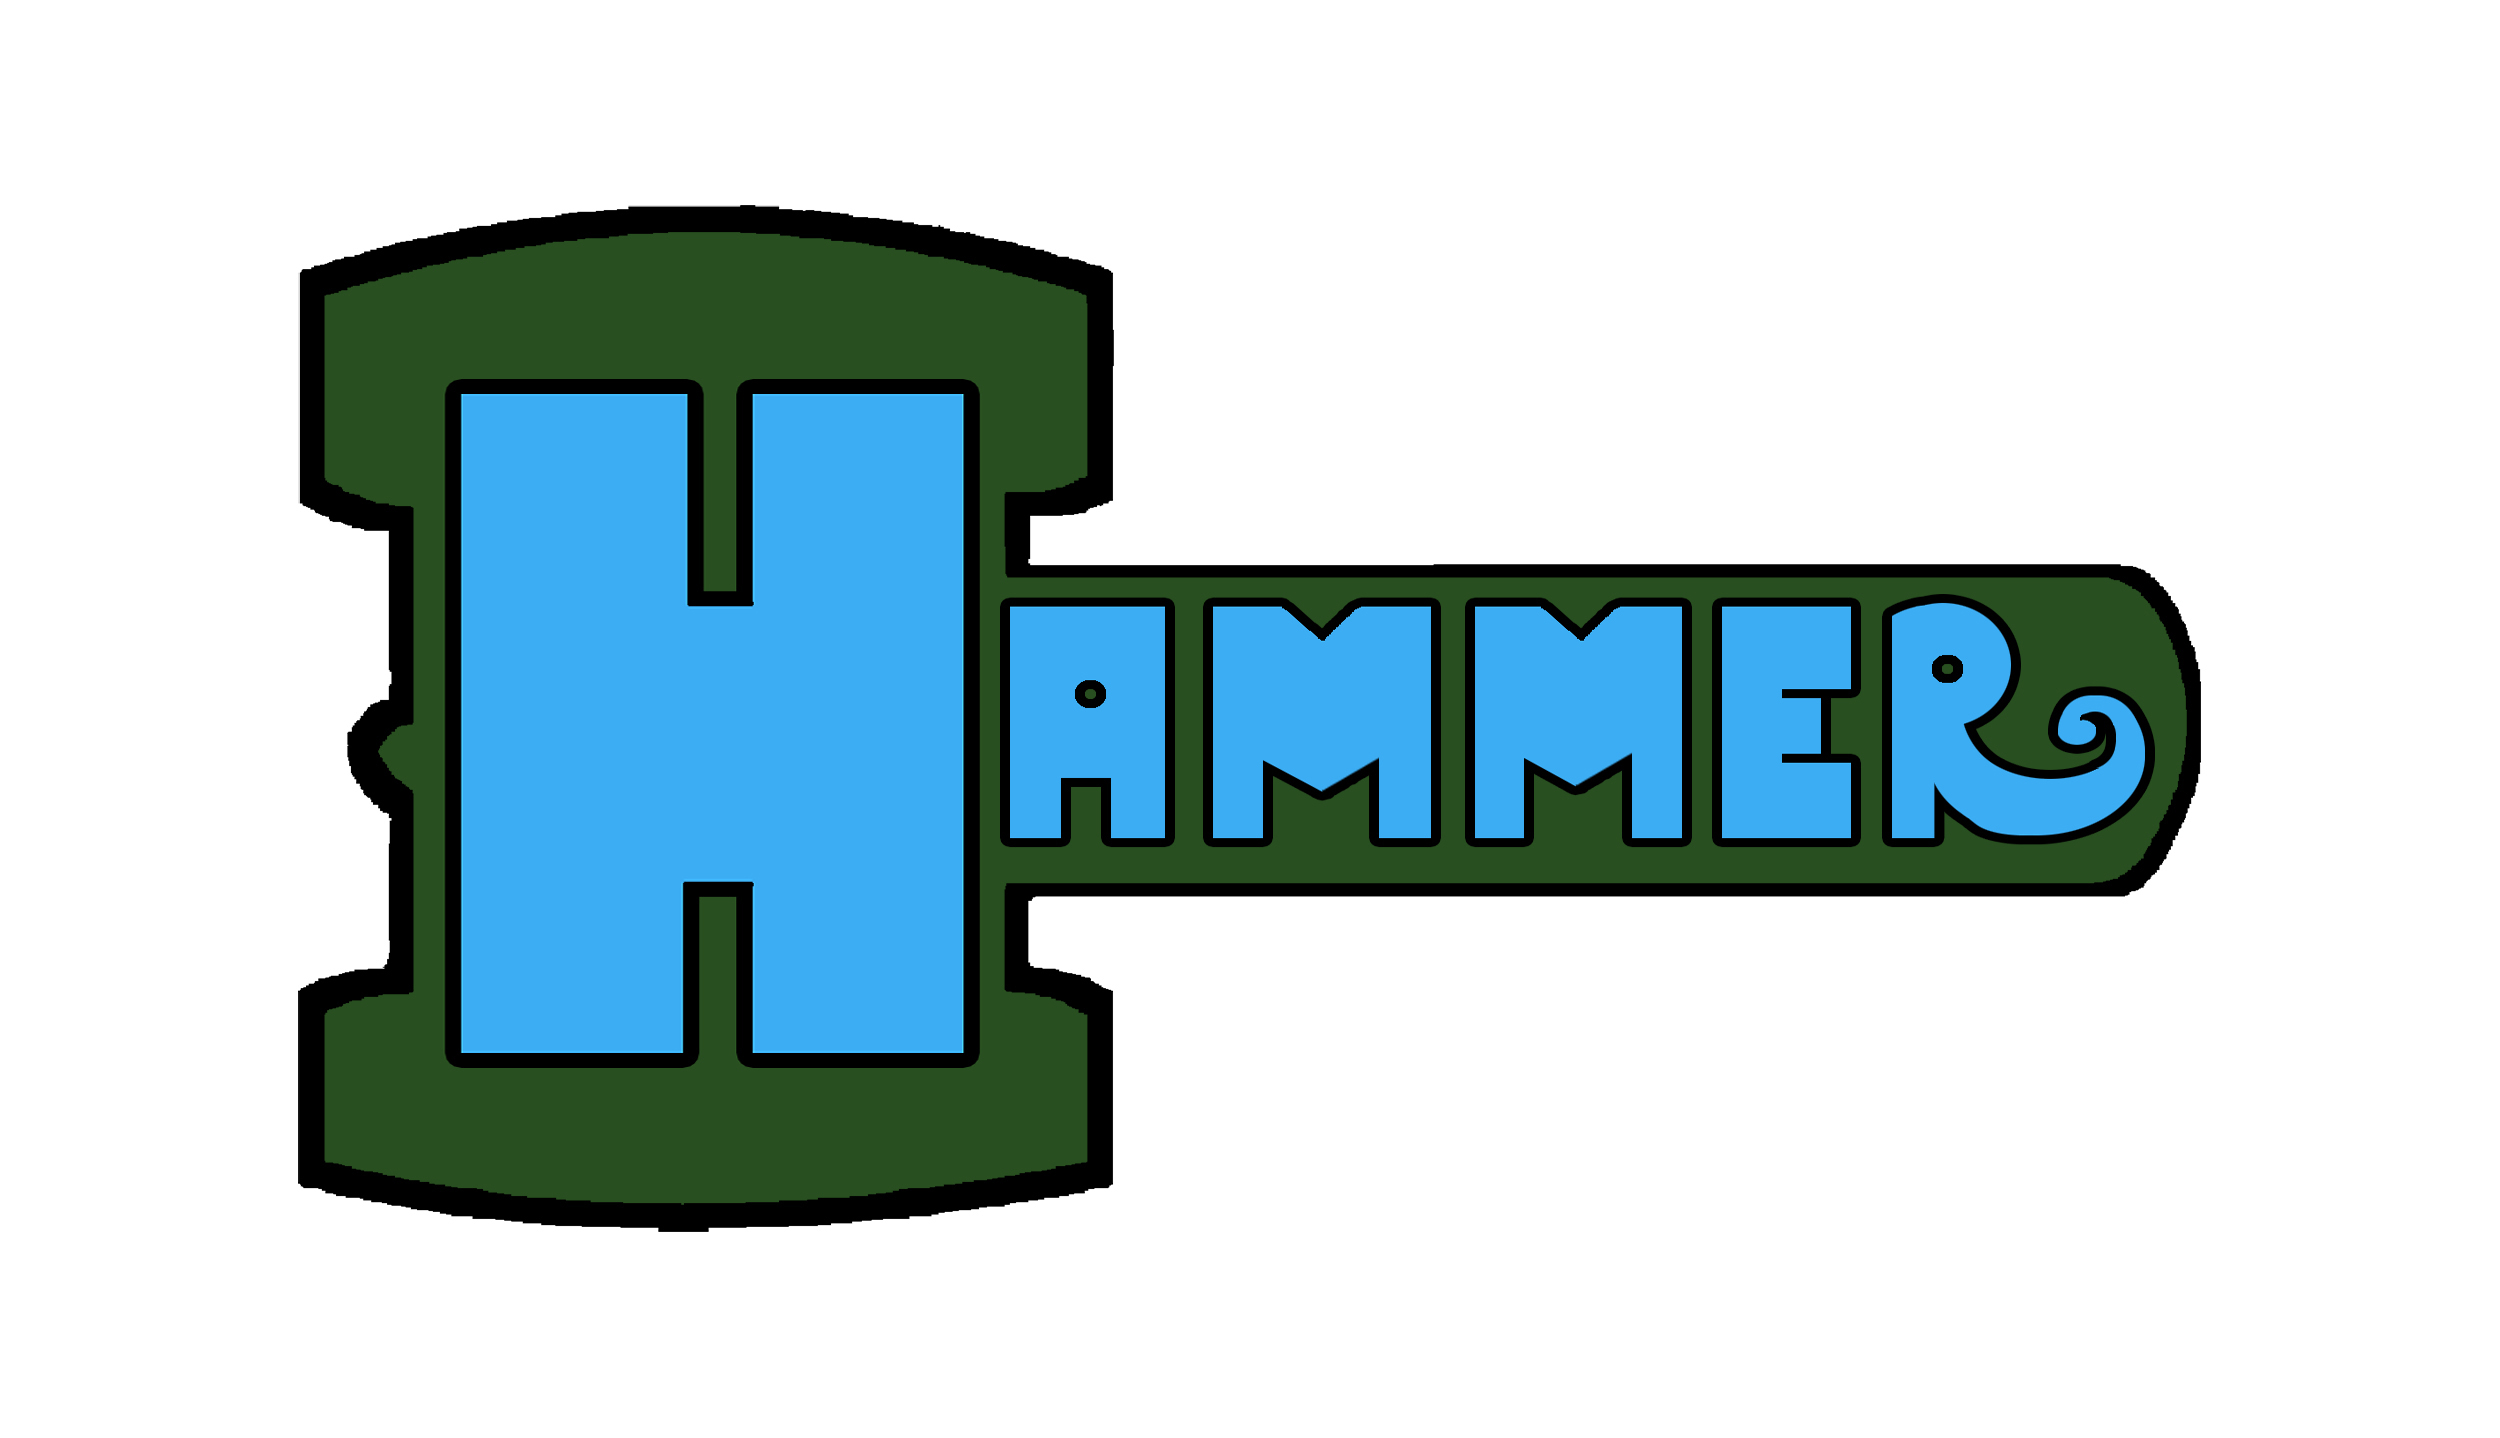 CHAPTER 1 : STUD HAMMER - After finding his father's journal, Stud Hammer makes a wish to get sucked into it not realizing his wish is about to come true.Genre: Action, Adventure, Comedy, Shonen Manga.Read from left to right. Chapter Release: January 1st 2016